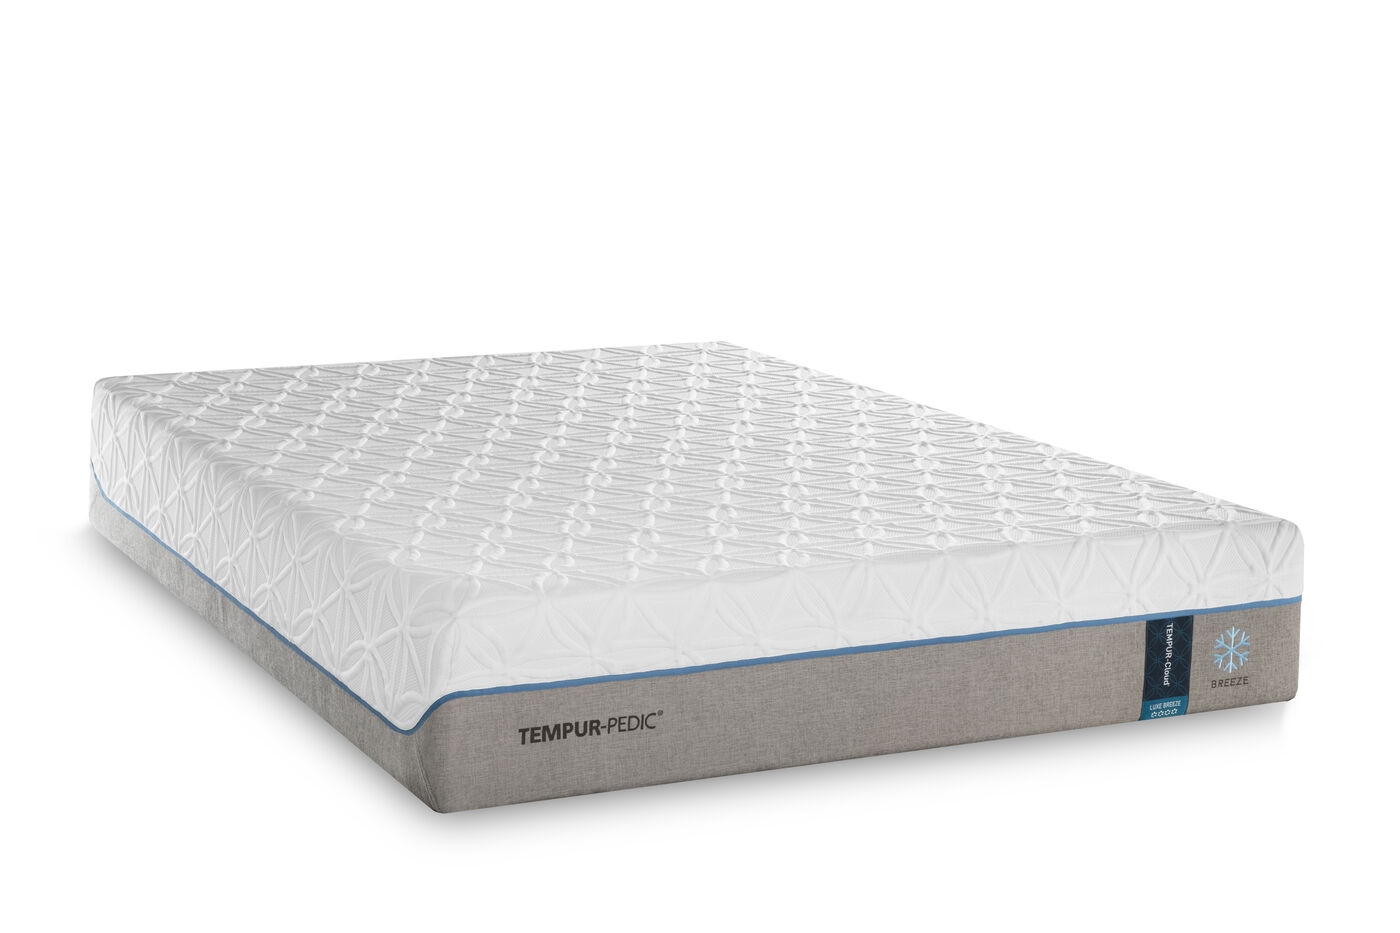 TEMPUR vs. Latex vs. Memory Foam. A memory foam mattress is designed to be soft yet firm. It contours to the body to offer support, while still providing excellent levels of comfort, relieving pressure on the joints and allowing for better blood circulation.